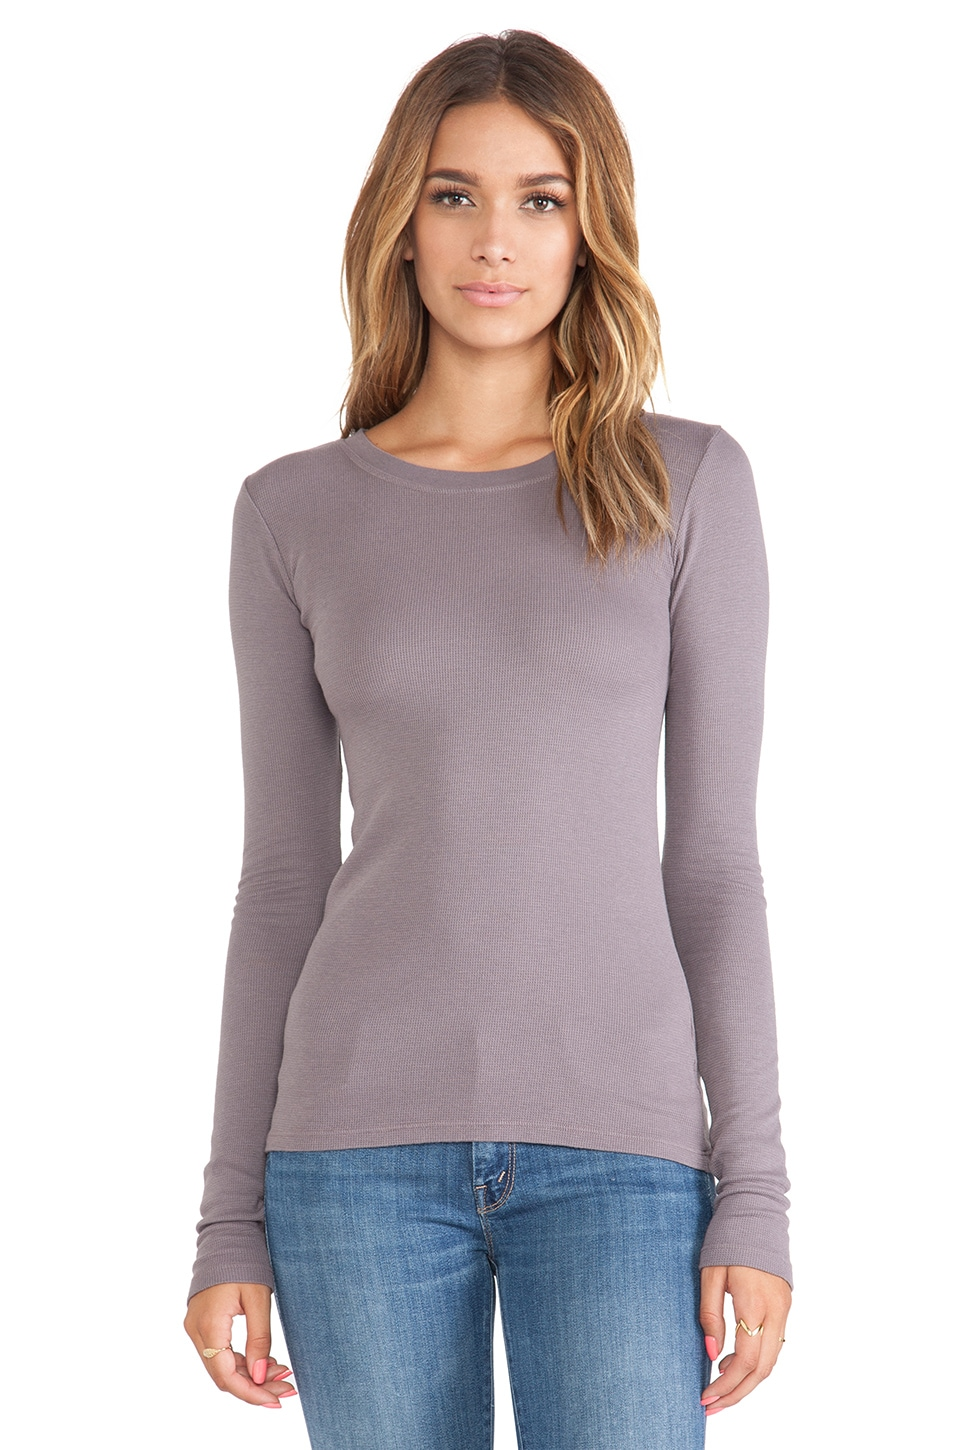 LA Made Long Sleeve Crew Neck Top in Lunar Grey